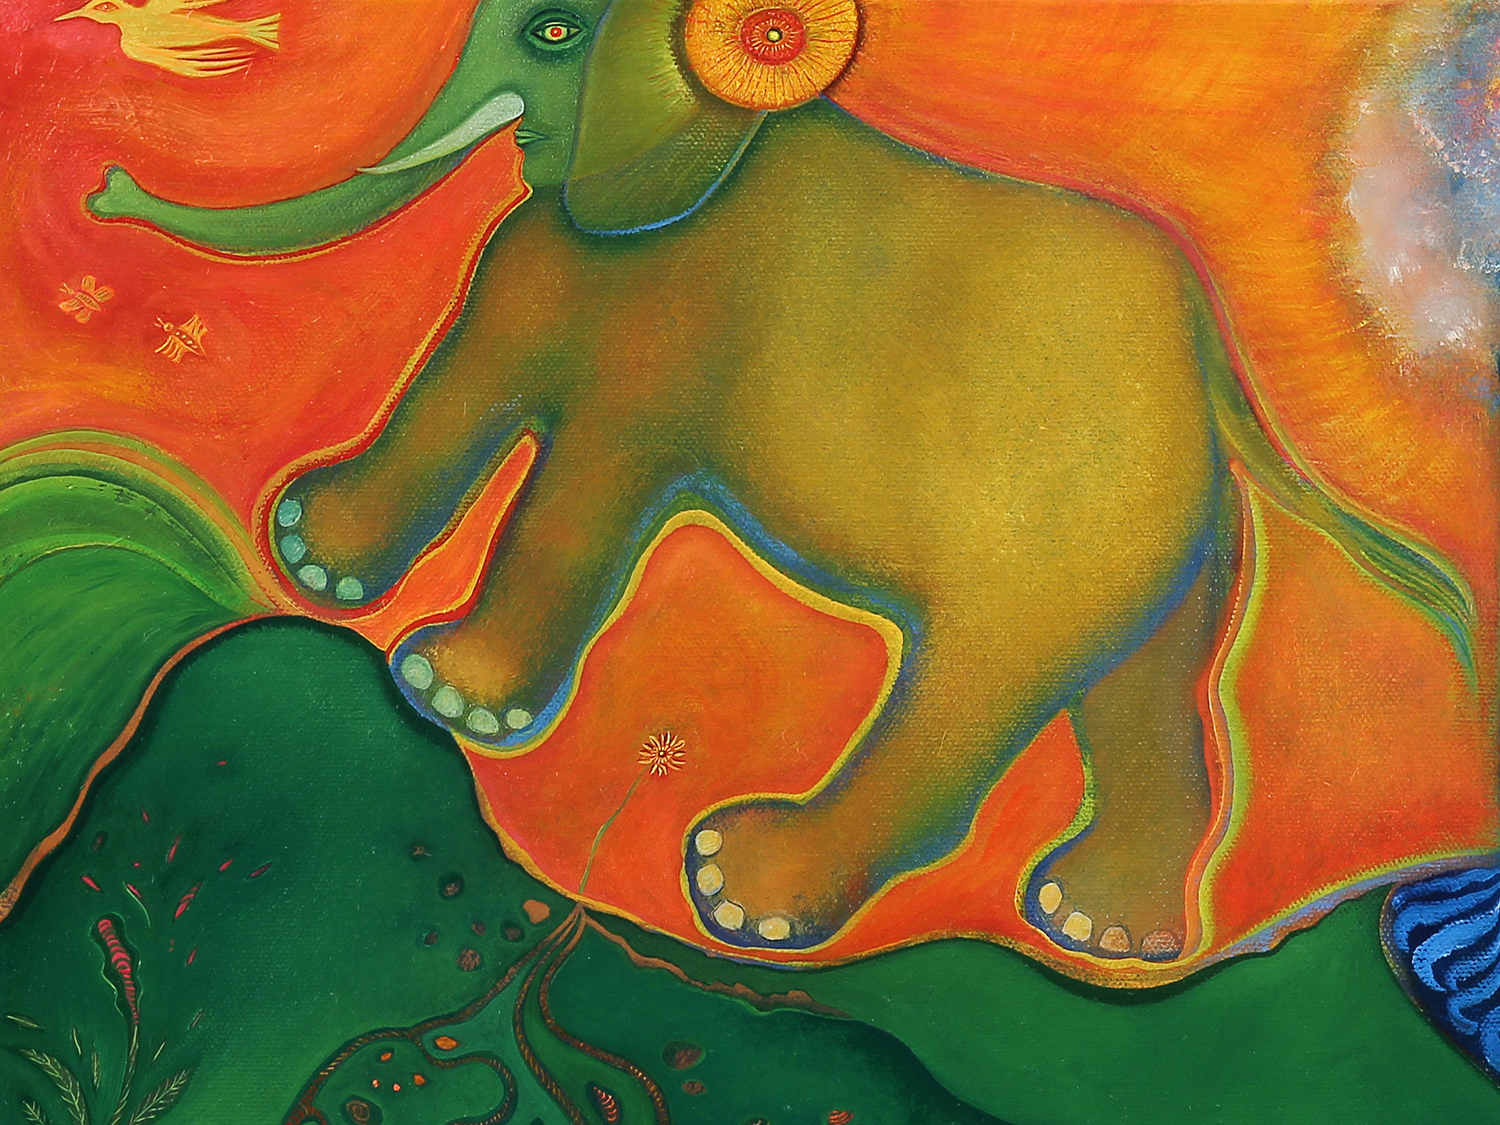 a detail from Anne's painting  Elephant Crossing